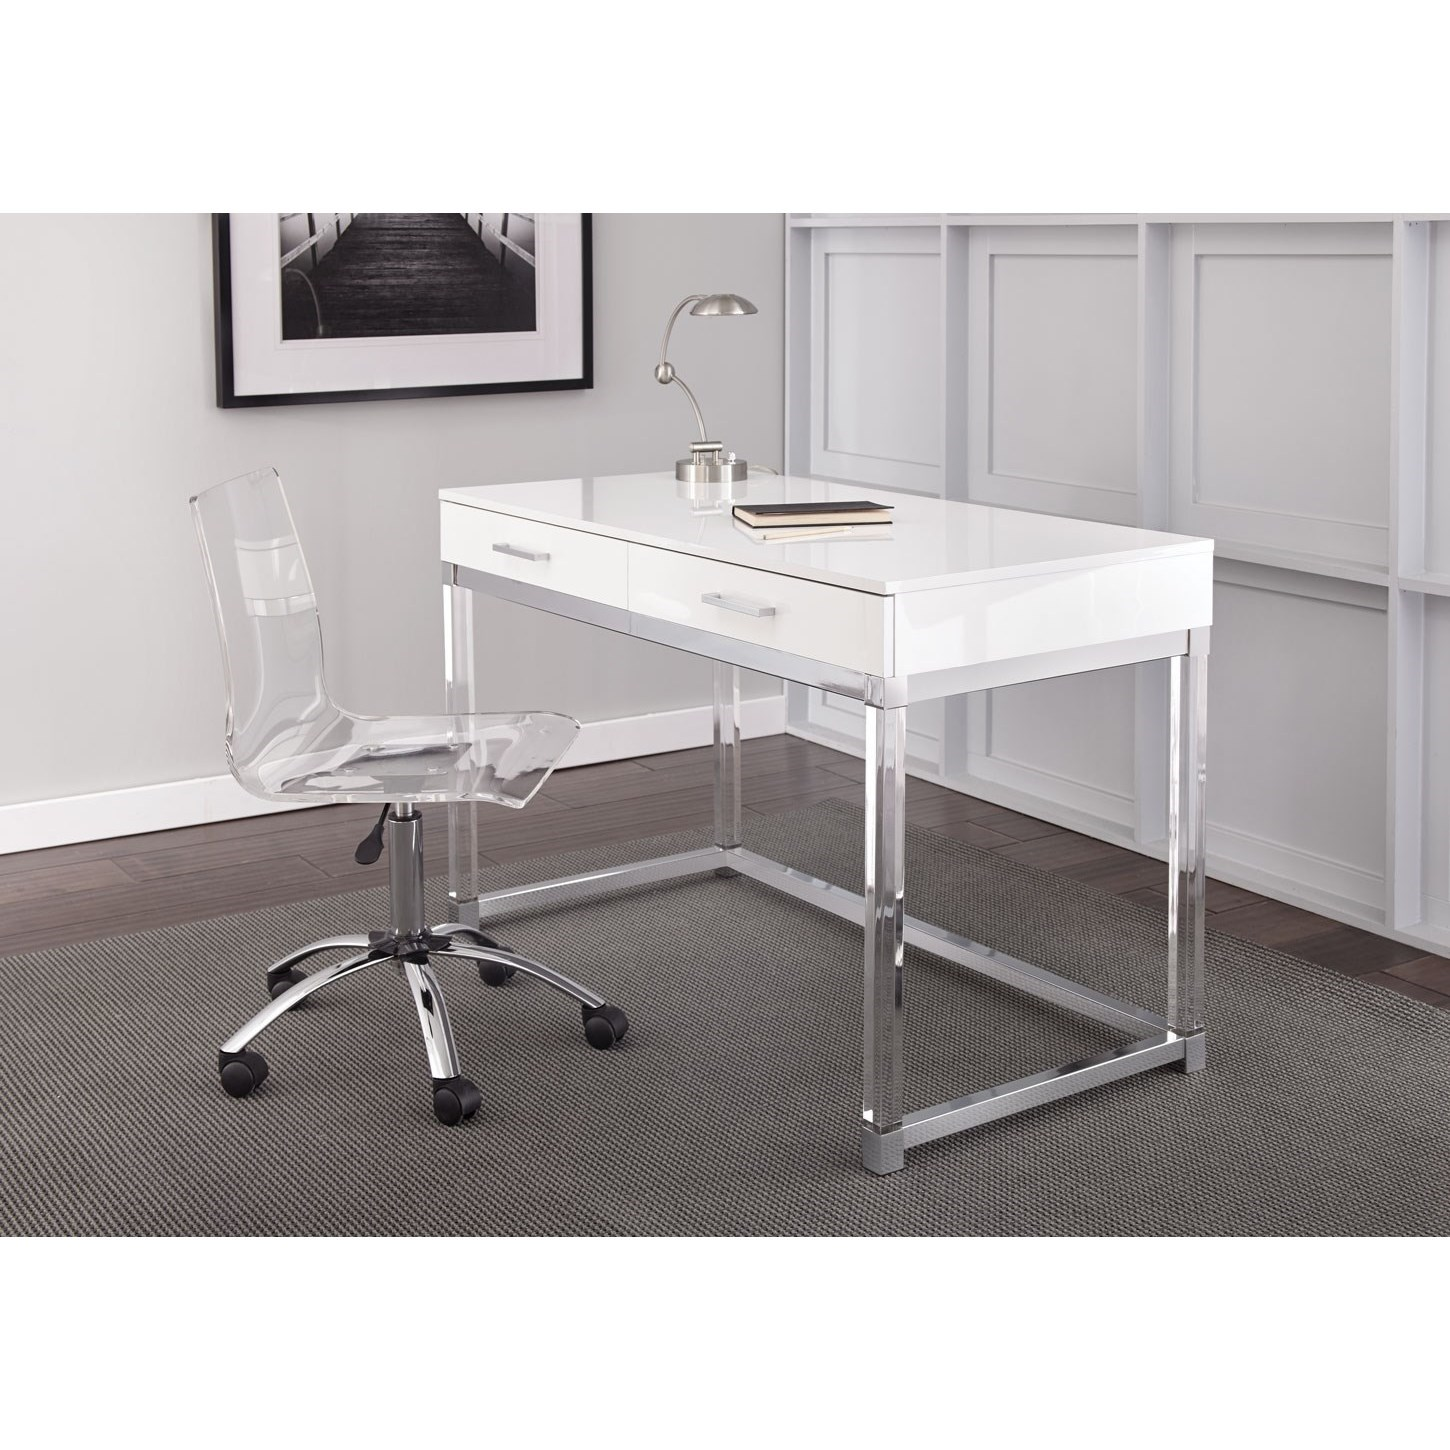 Everett Chrome and Acrylic Desk and Chair Set by Steve Silver at Walker's Furniture